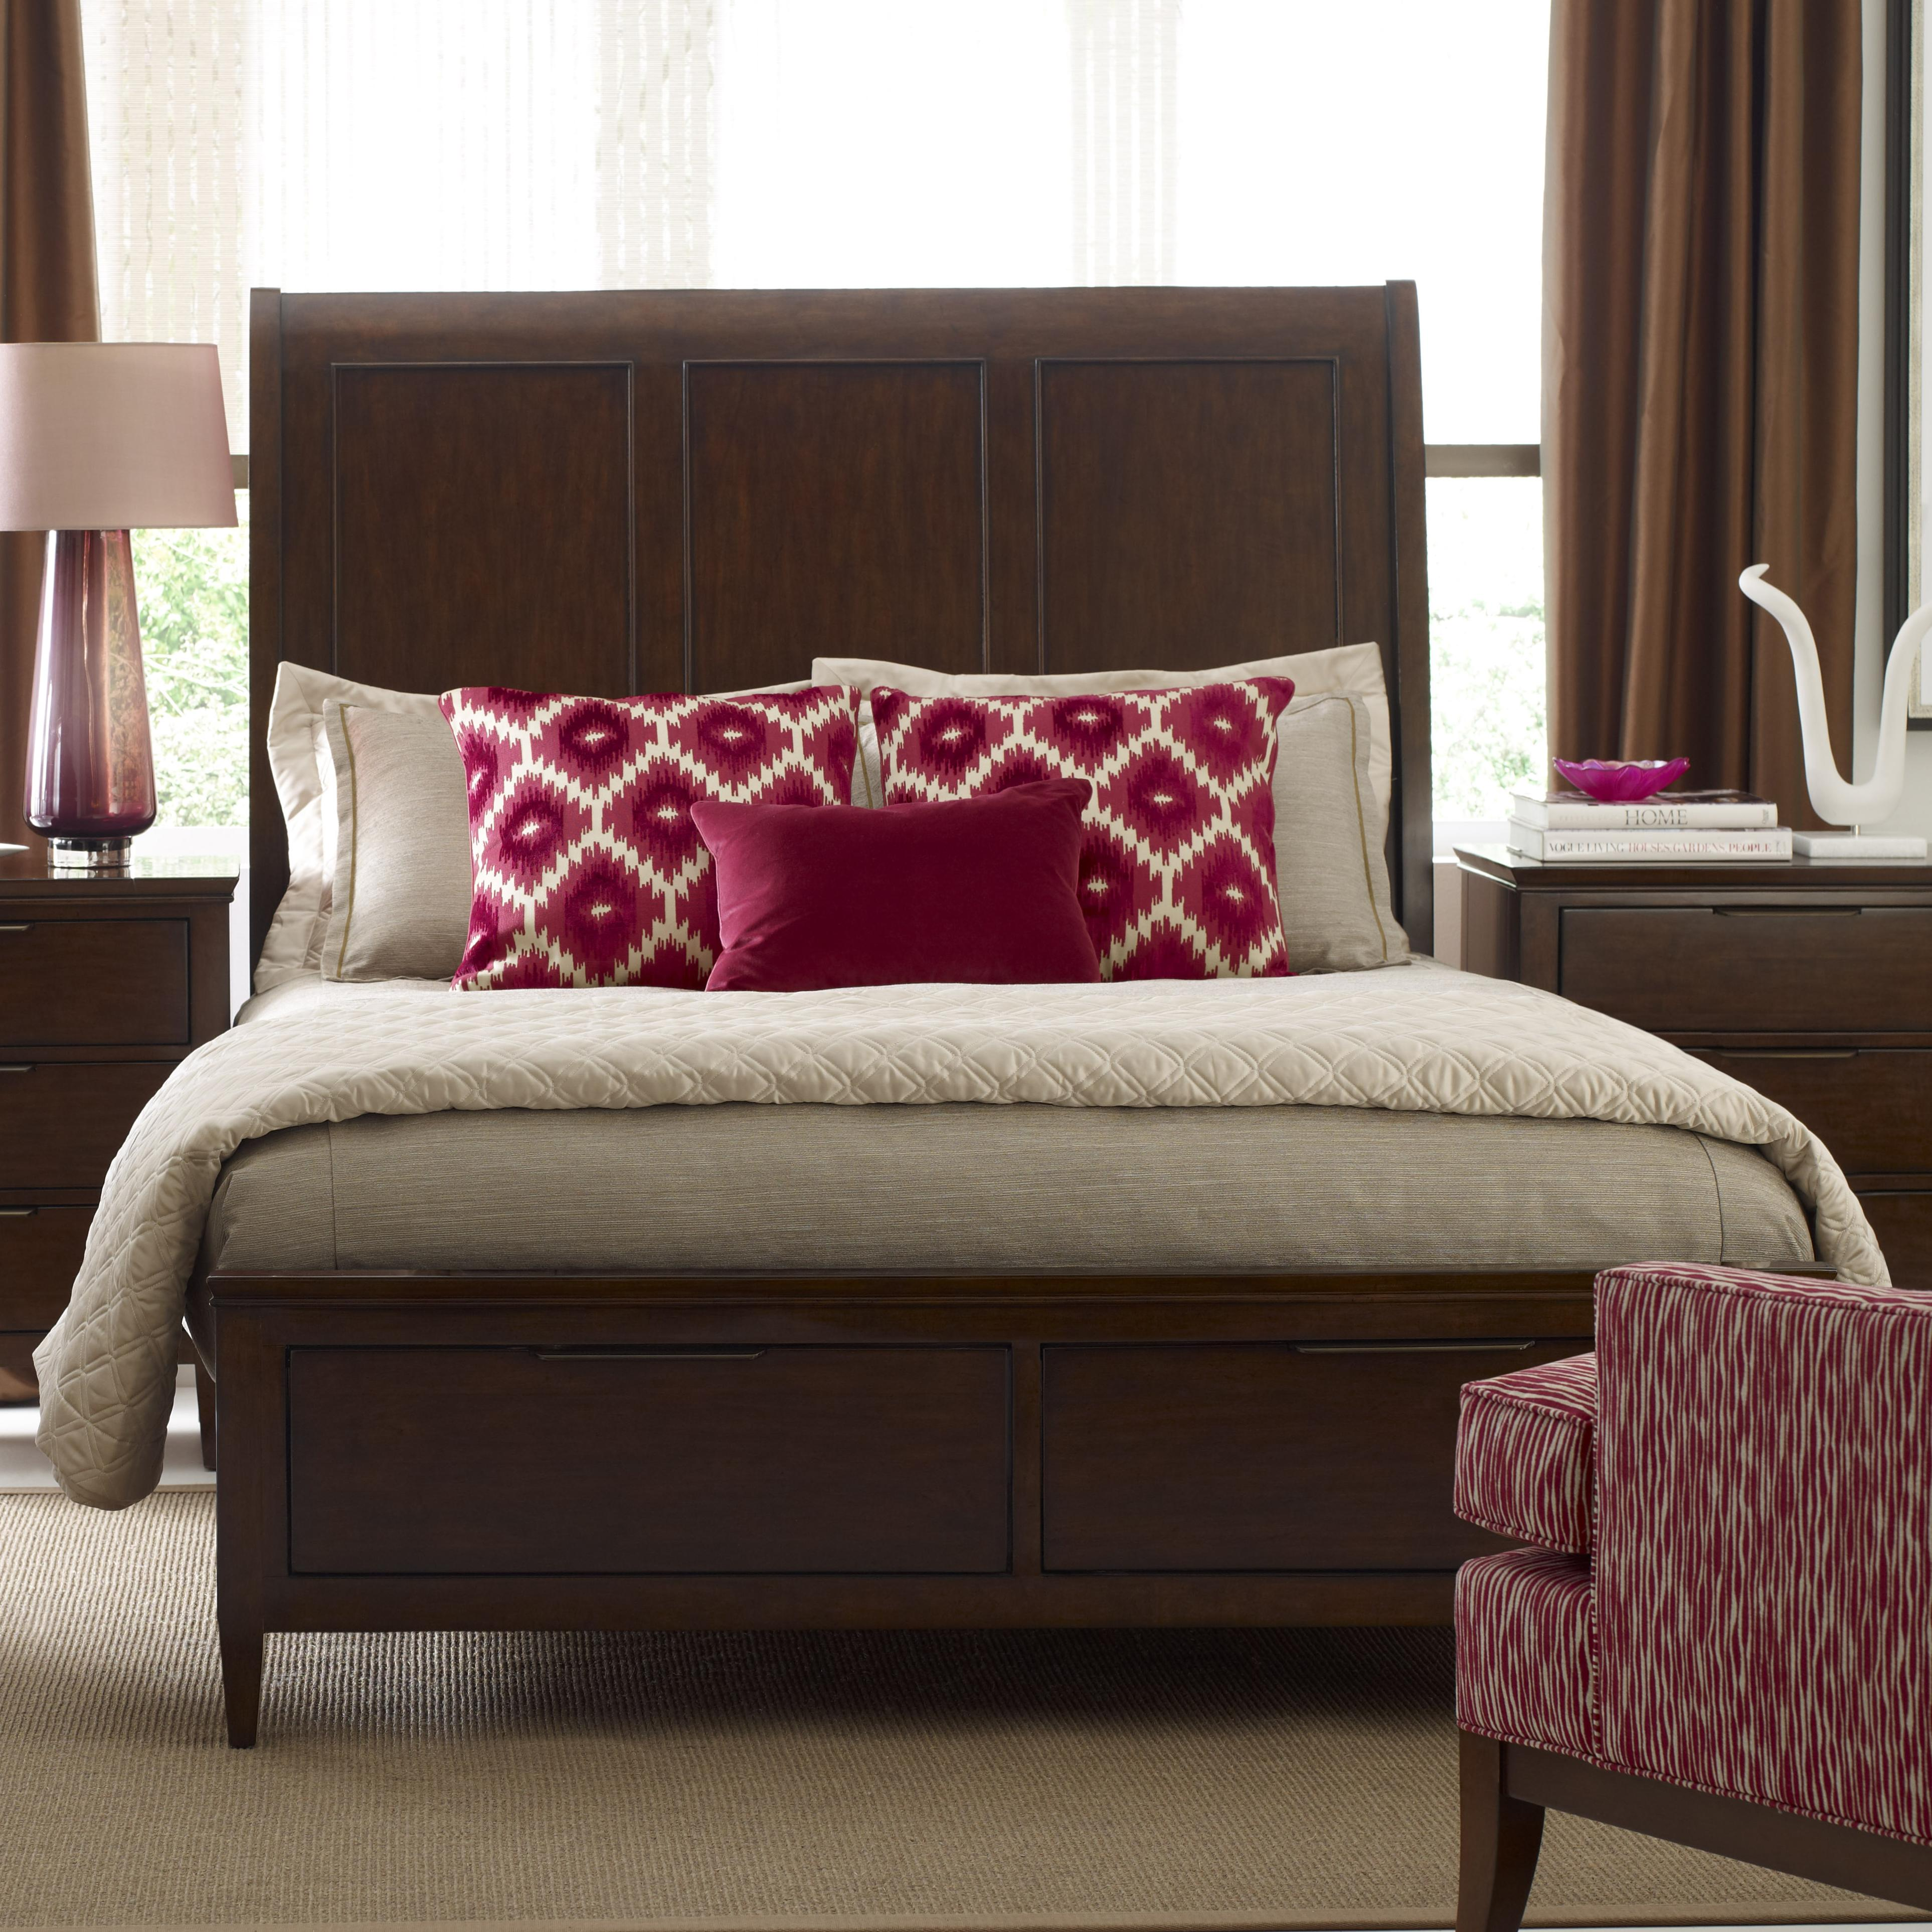 Elise Caris Queen Sleigh Bed w/ Storage Footboard by Kincaid Furniture at Johnny Janosik